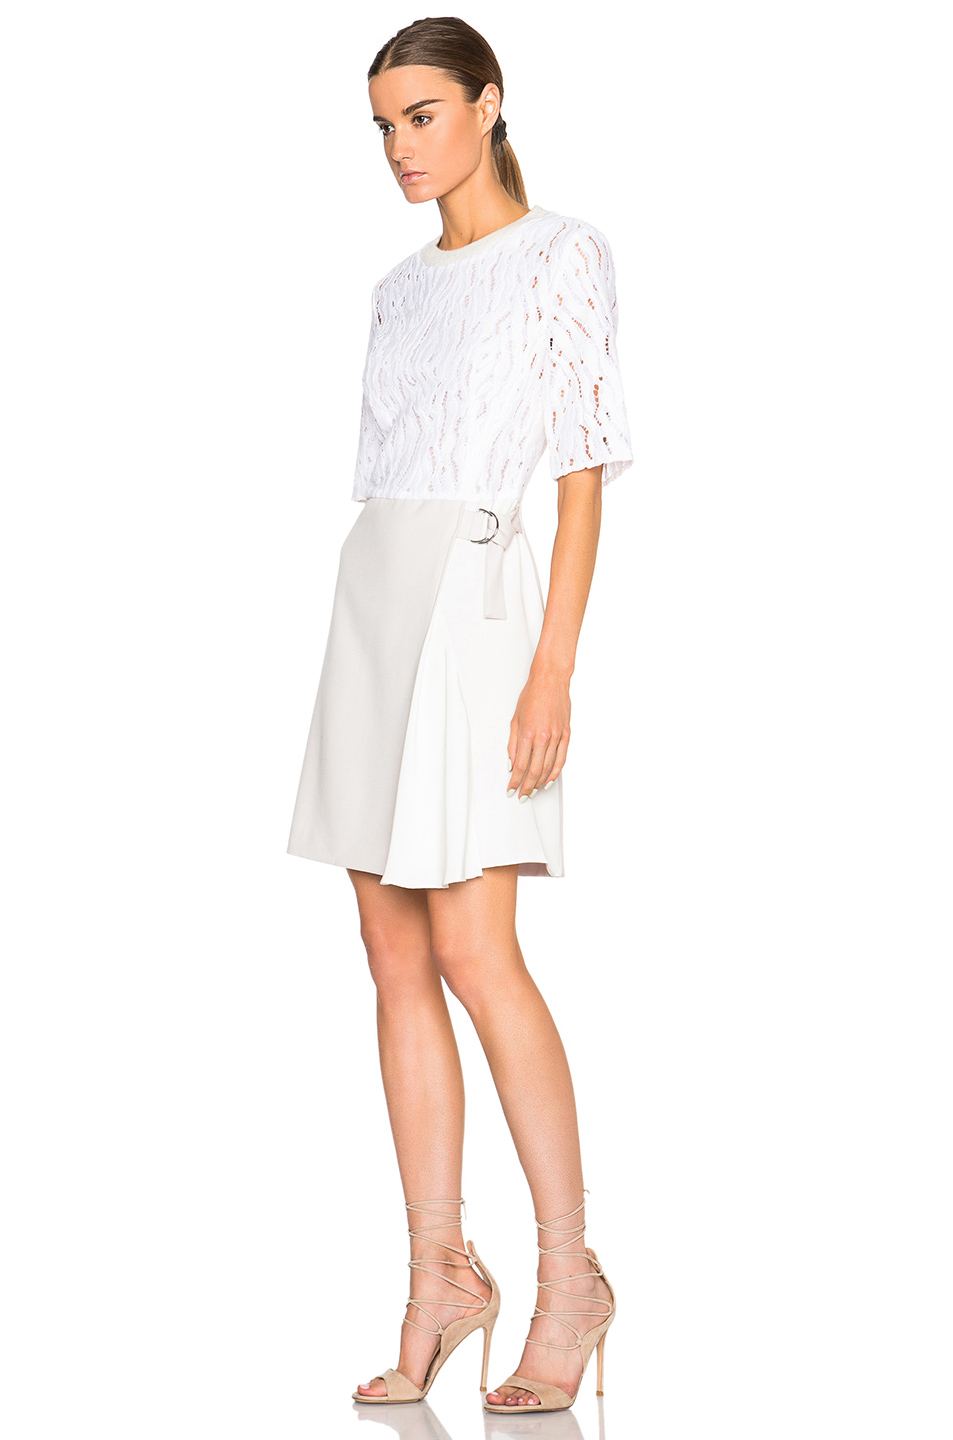 Browse Cheap Price DRESSES - Short dresses 3.1 Phillip Lim Clearance Store Sale Online PYuN6S